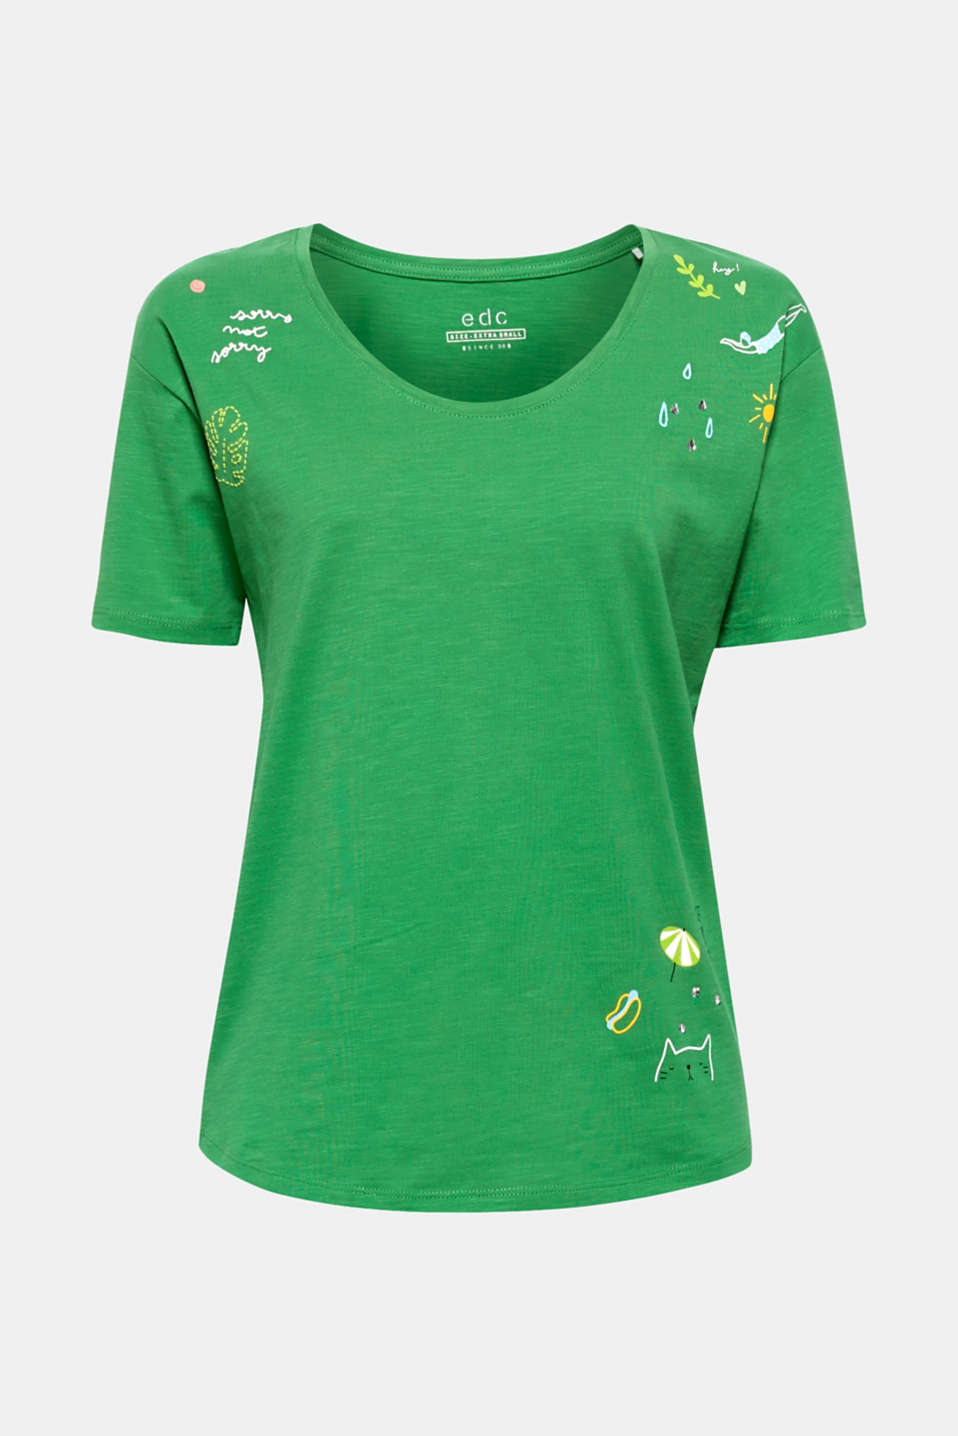 T-shirt with rhinestone and print motifs, 100% cotton, DARK GREEN, detail image number 6